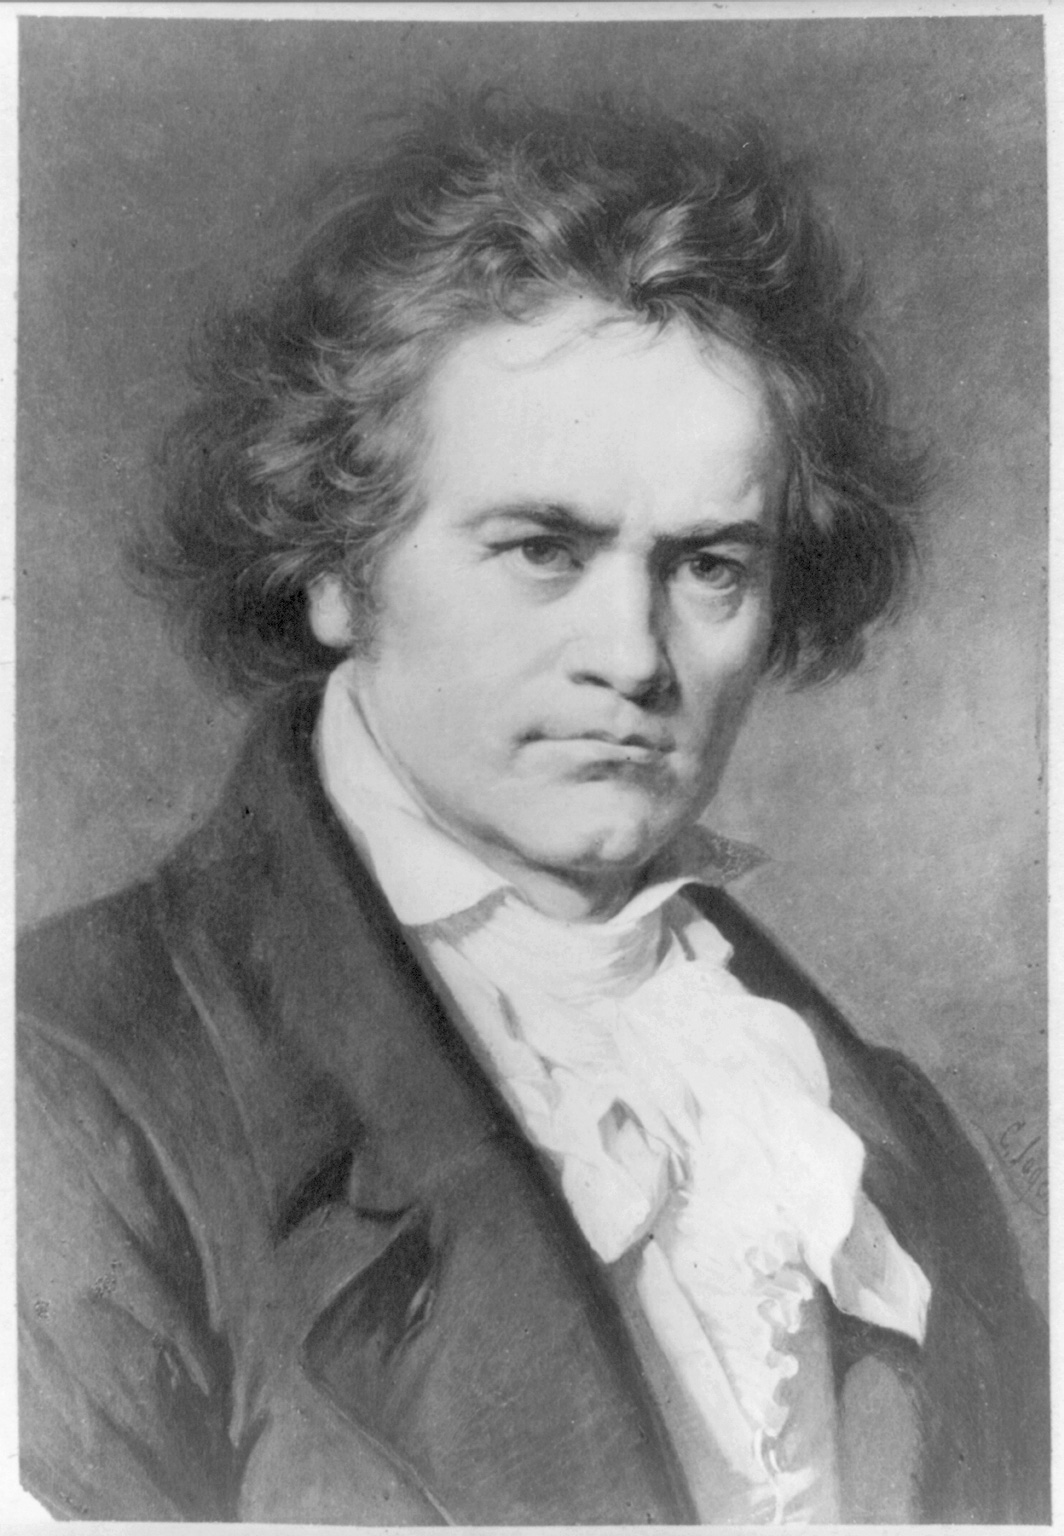 a biography of ludwig van beethoven a pianist Ludwig van beethoven a famous german composer and pianist who was born on 17 december 1770 in bann, his father name is johann van beethoven ludwig van beethoven was.